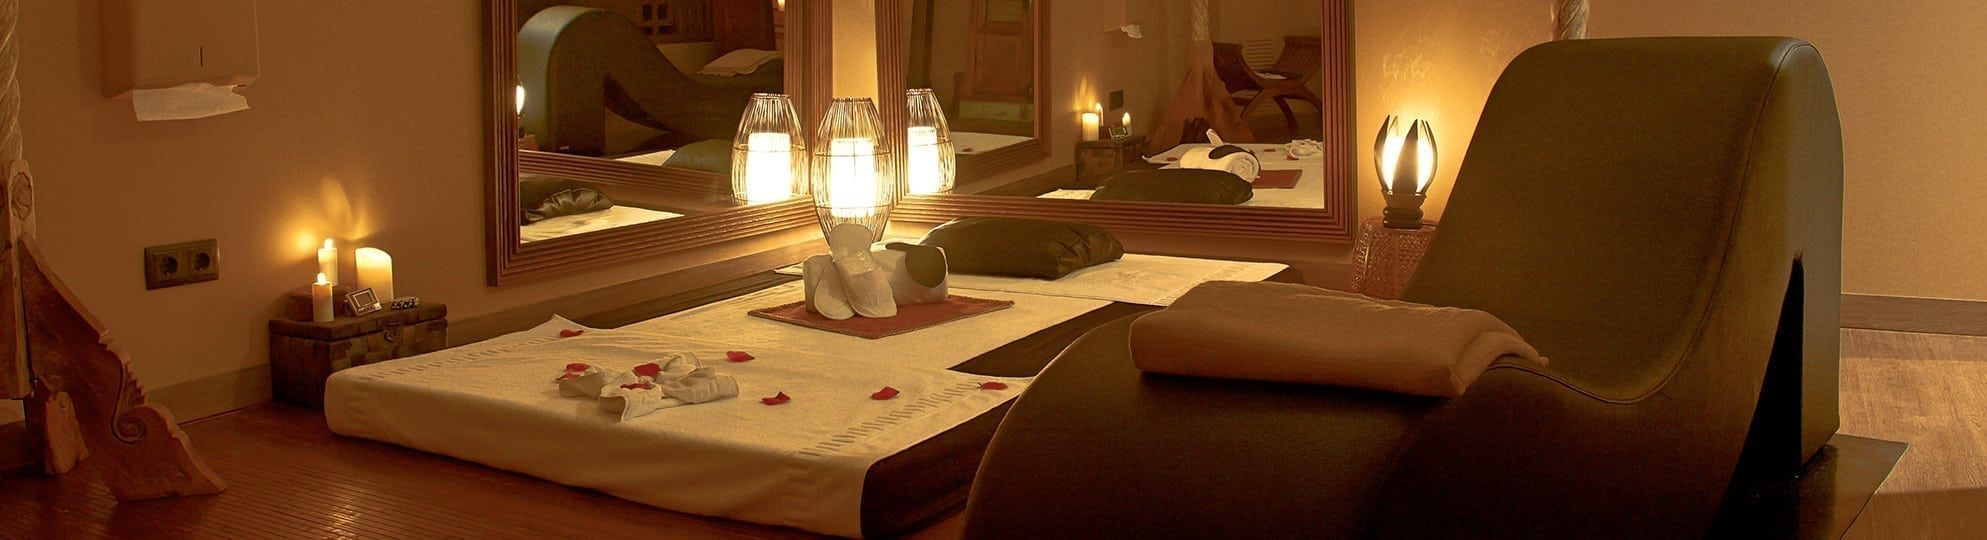 Tantric massage center in Barcelona